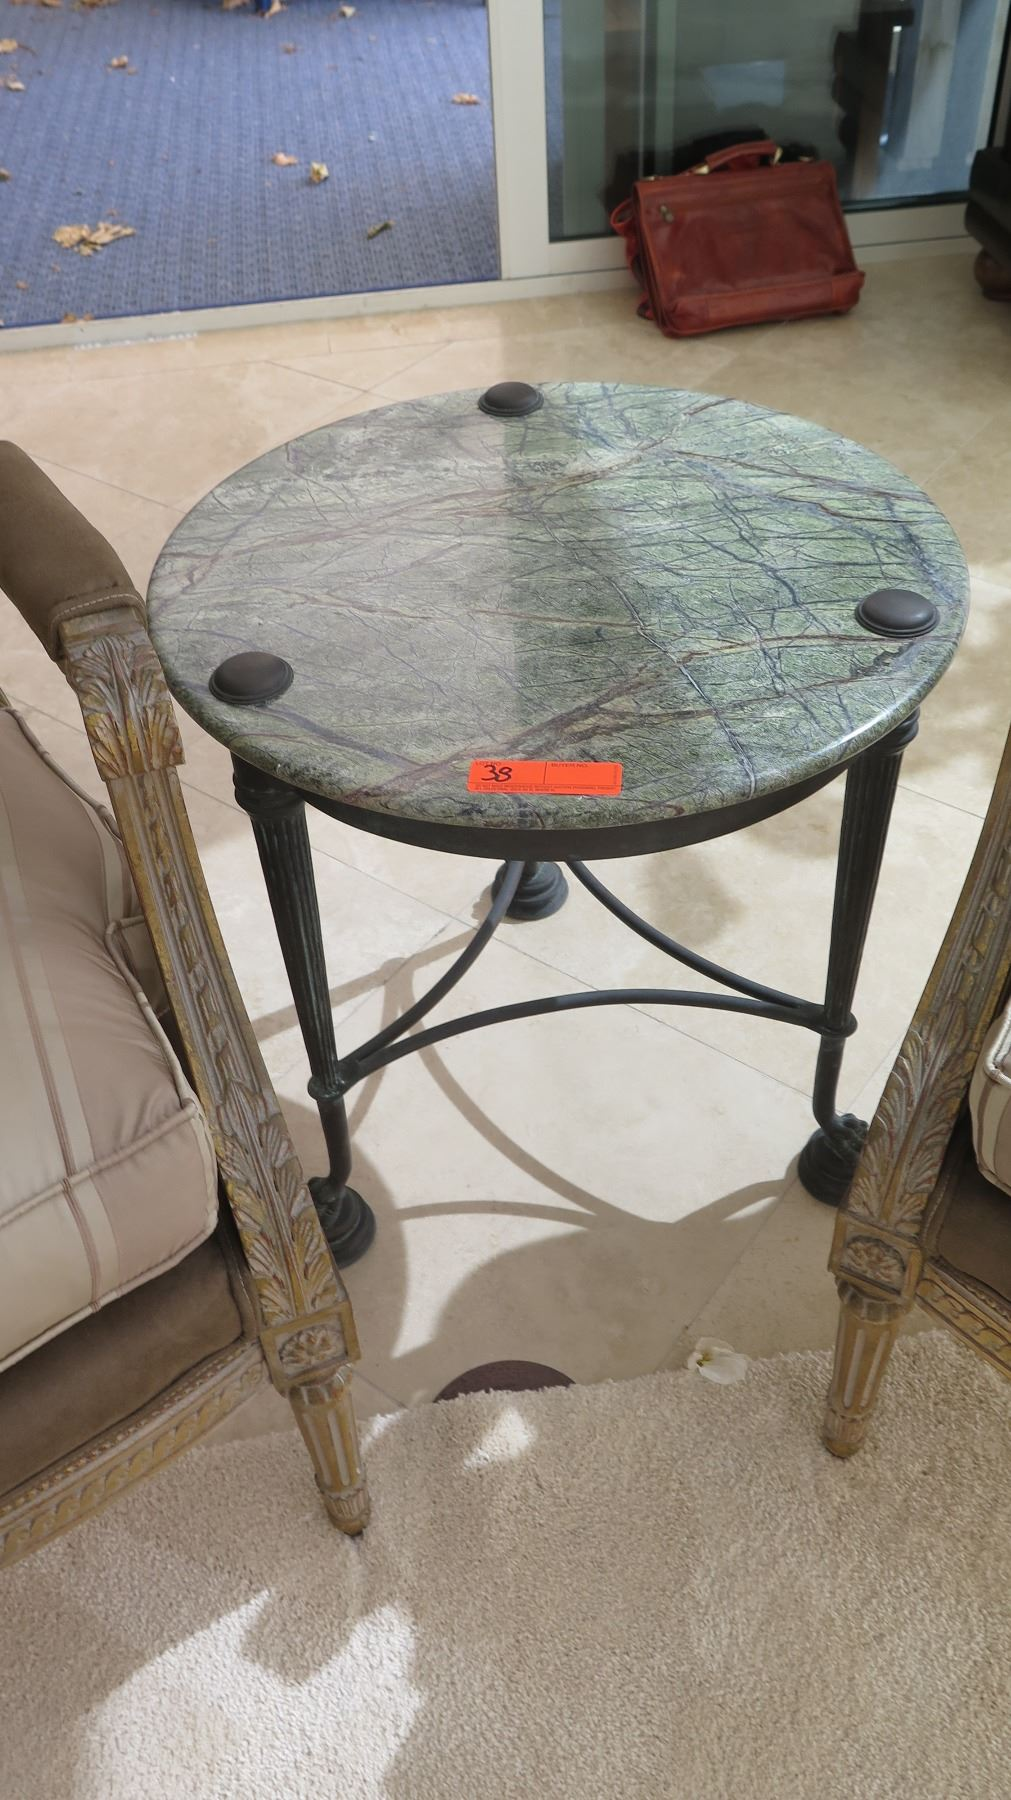 round accent table green natural stone top bronze approx dia grooming counter lamp cute tables navy side west elm floor pillow nautical lights rustic legs kid runner cool coffee